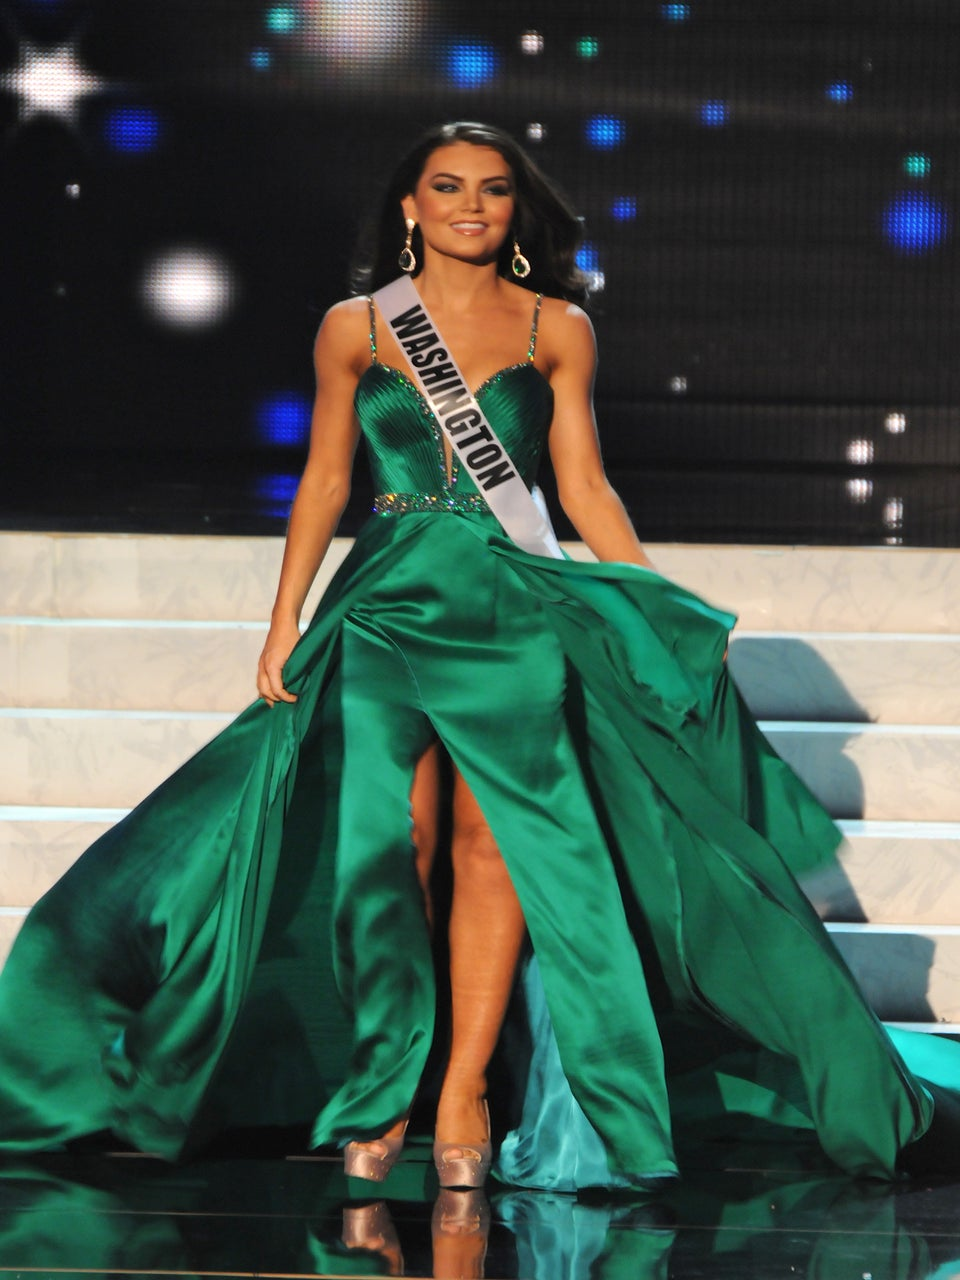 Another Miss USA Contestant Alleges She Received Unwanted Sexual Advances From Donald Trump